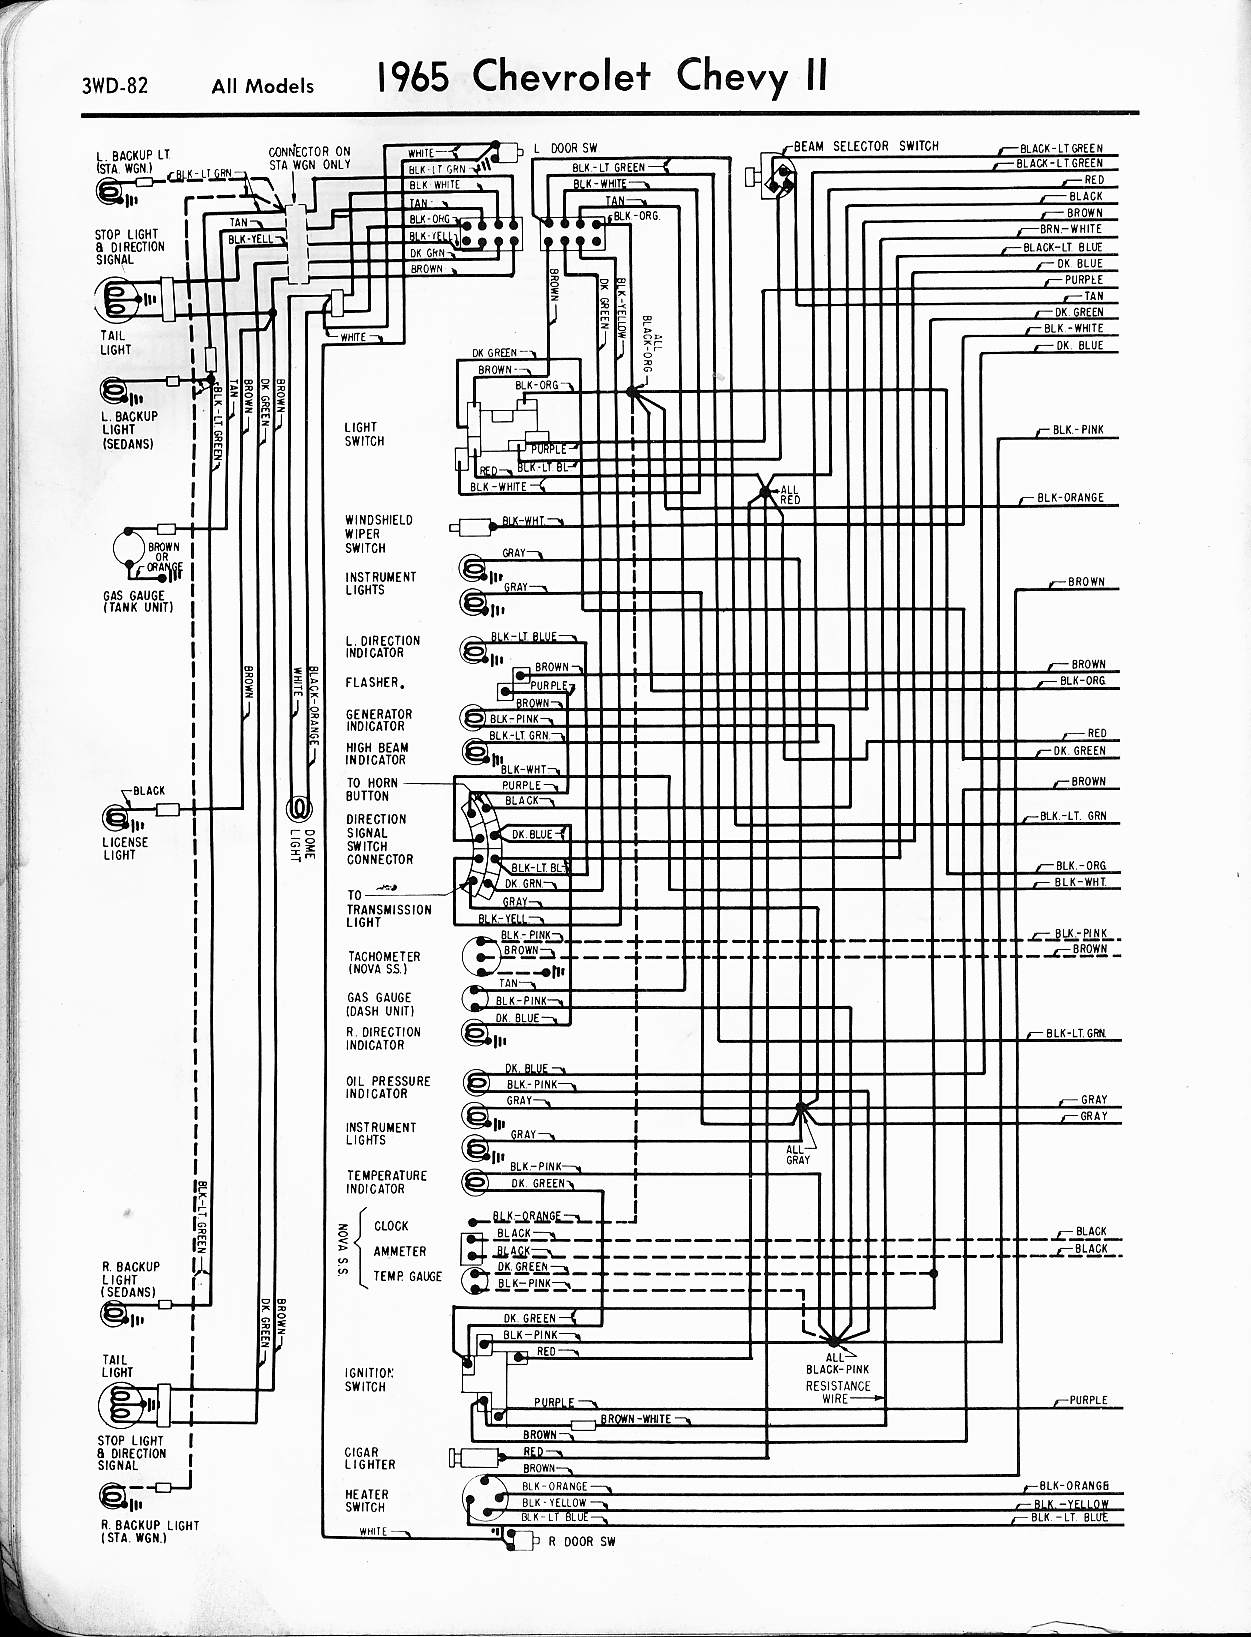 chevy diagrams rh wiring wizard com Malibu Engine Diagram Hydra Sport Wiring Diagram